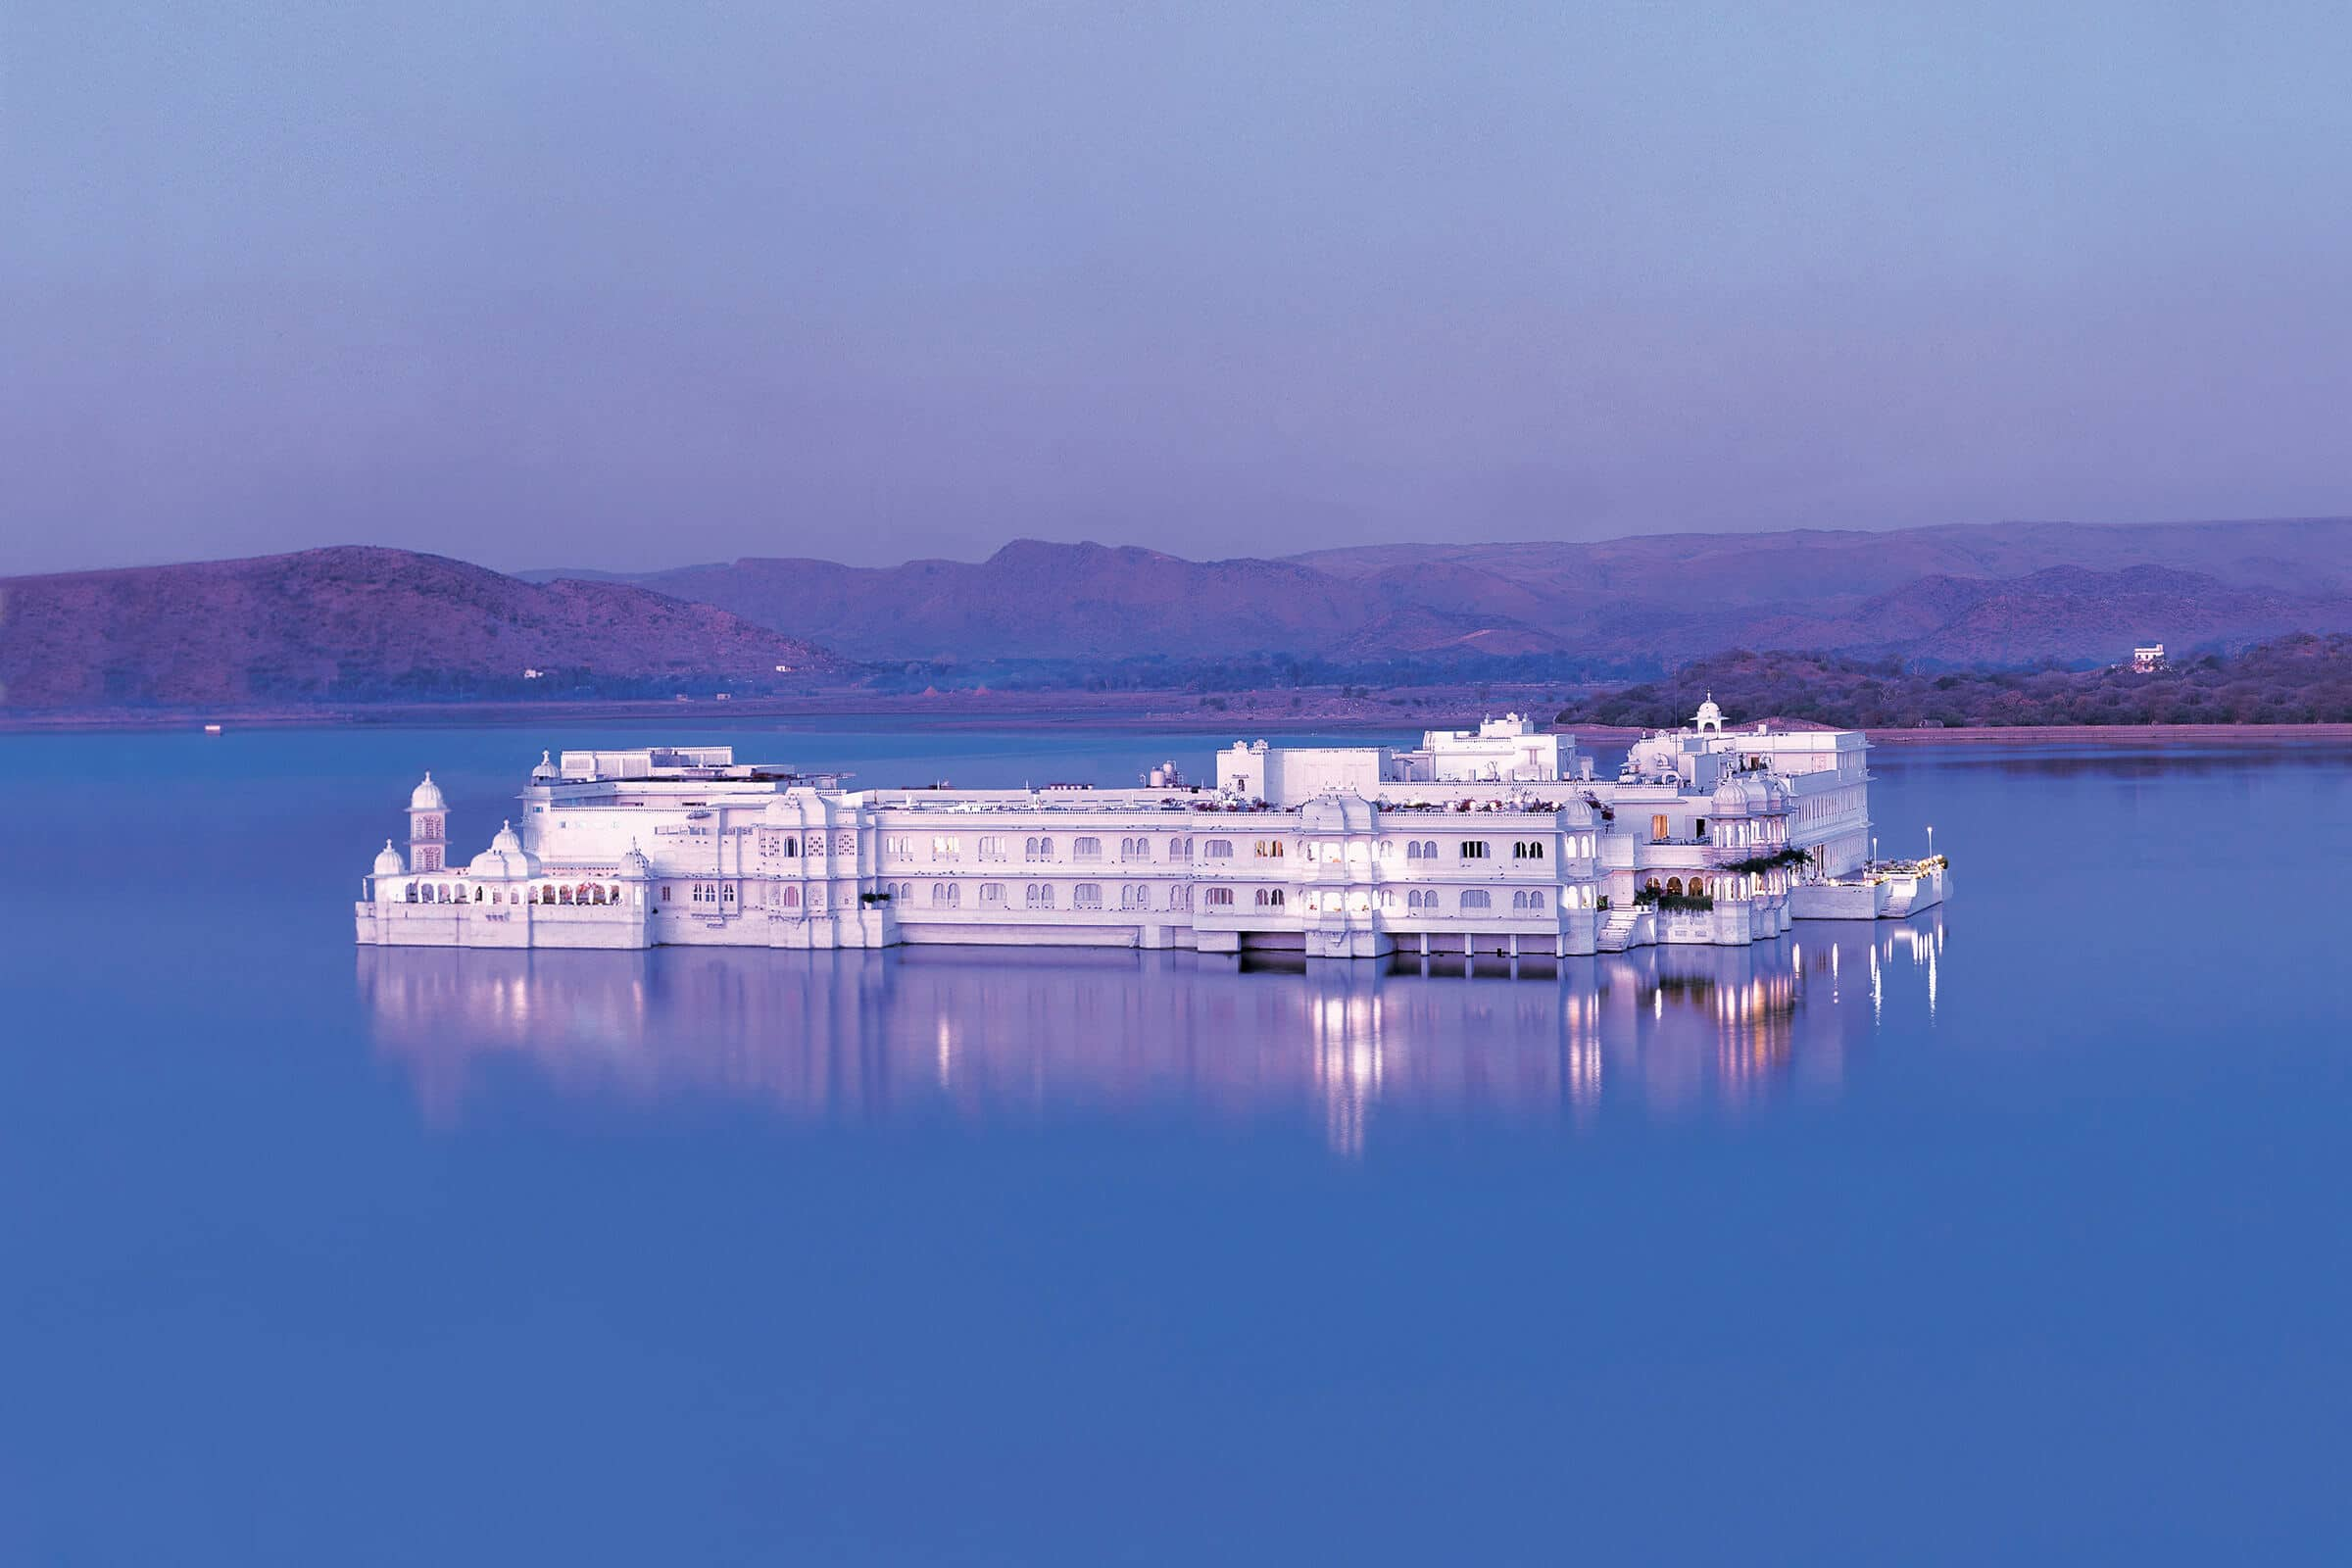 Lake Palace on fine dining Indian